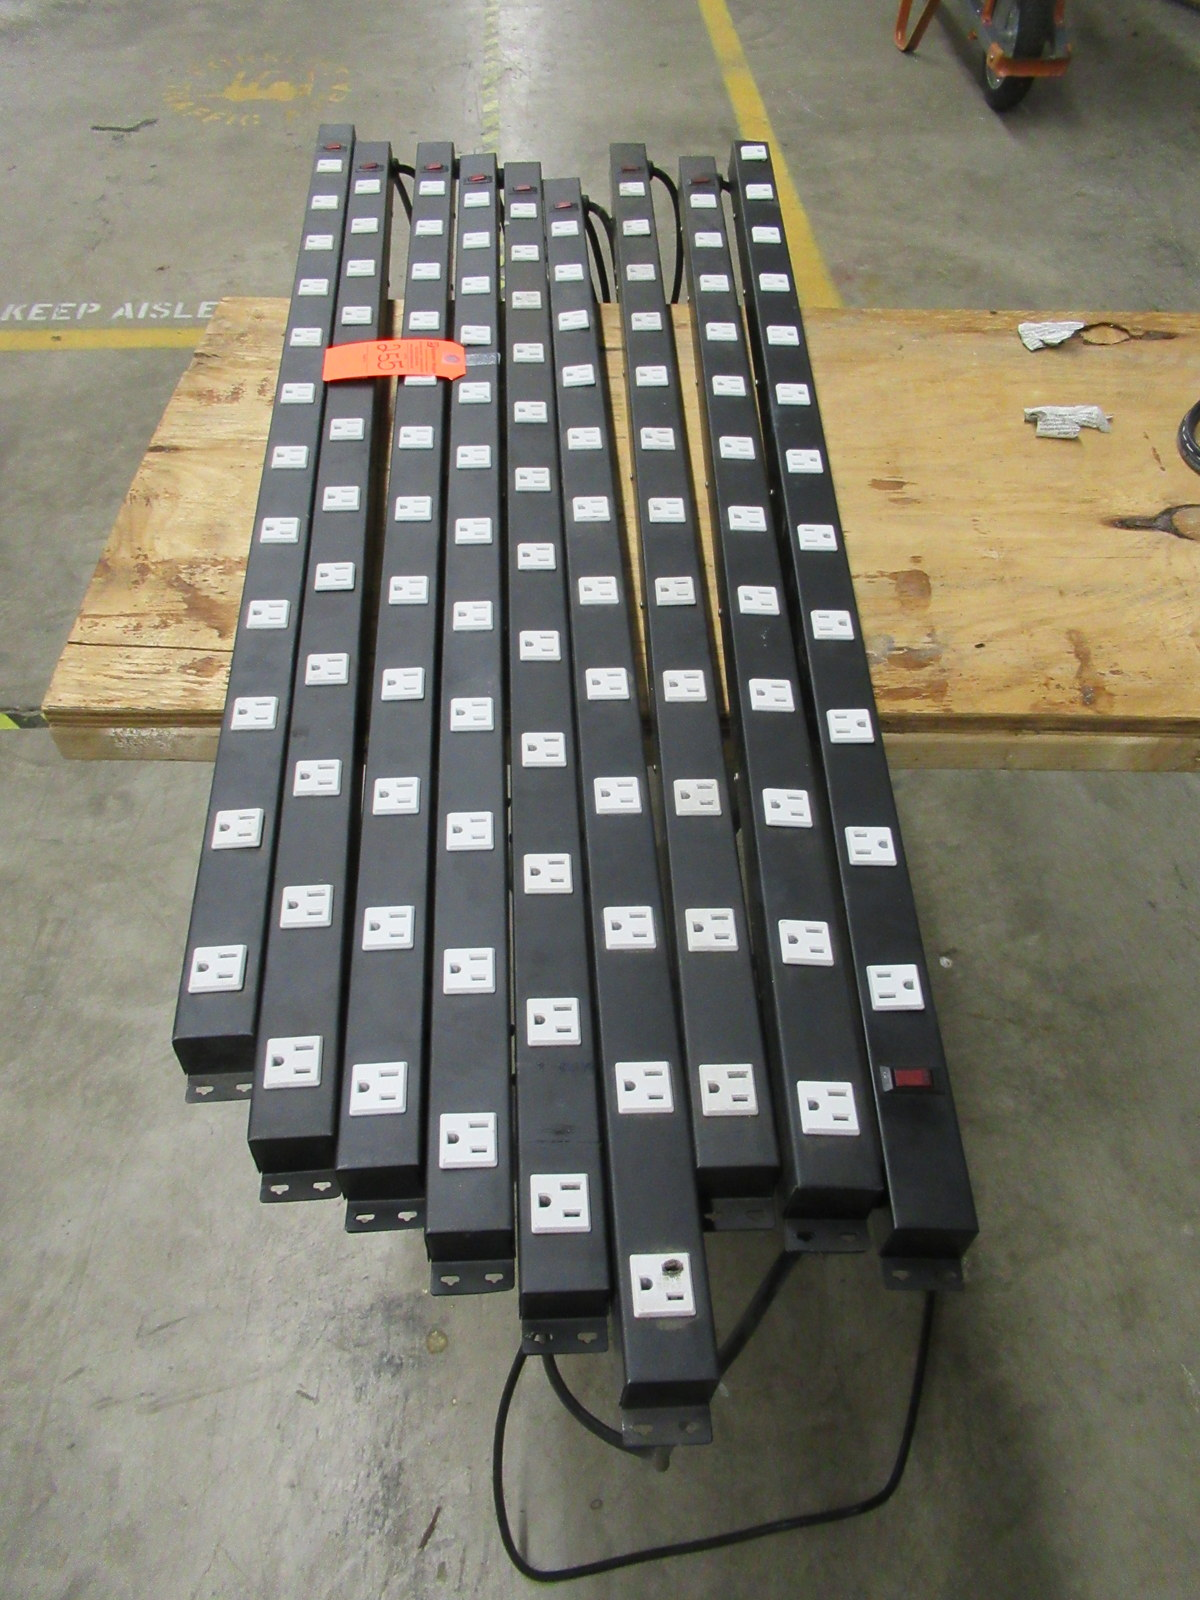 Lot 255 - Opent Tron OT-4126 Power Strips